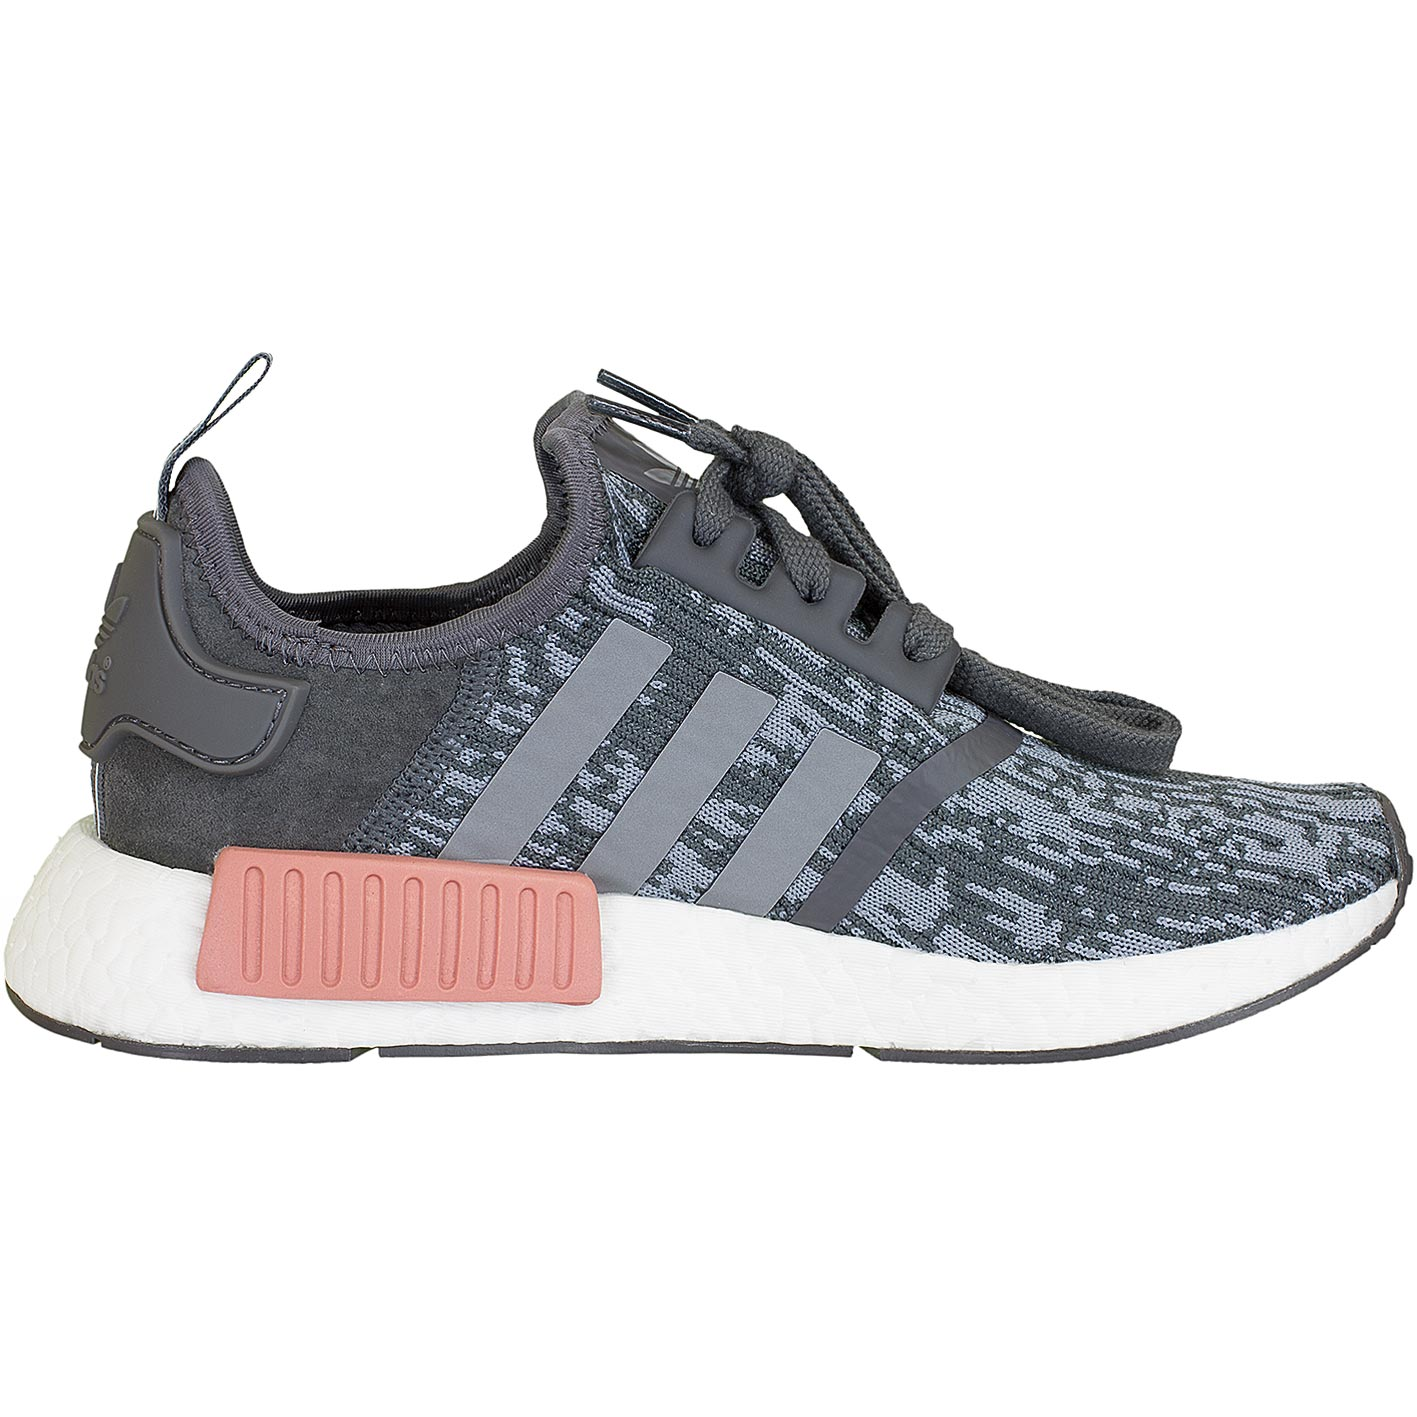 lowest price new design cheapest price ☆ Adidas Originals Damen Sneaker NMD R1 grau/pink - hier ...